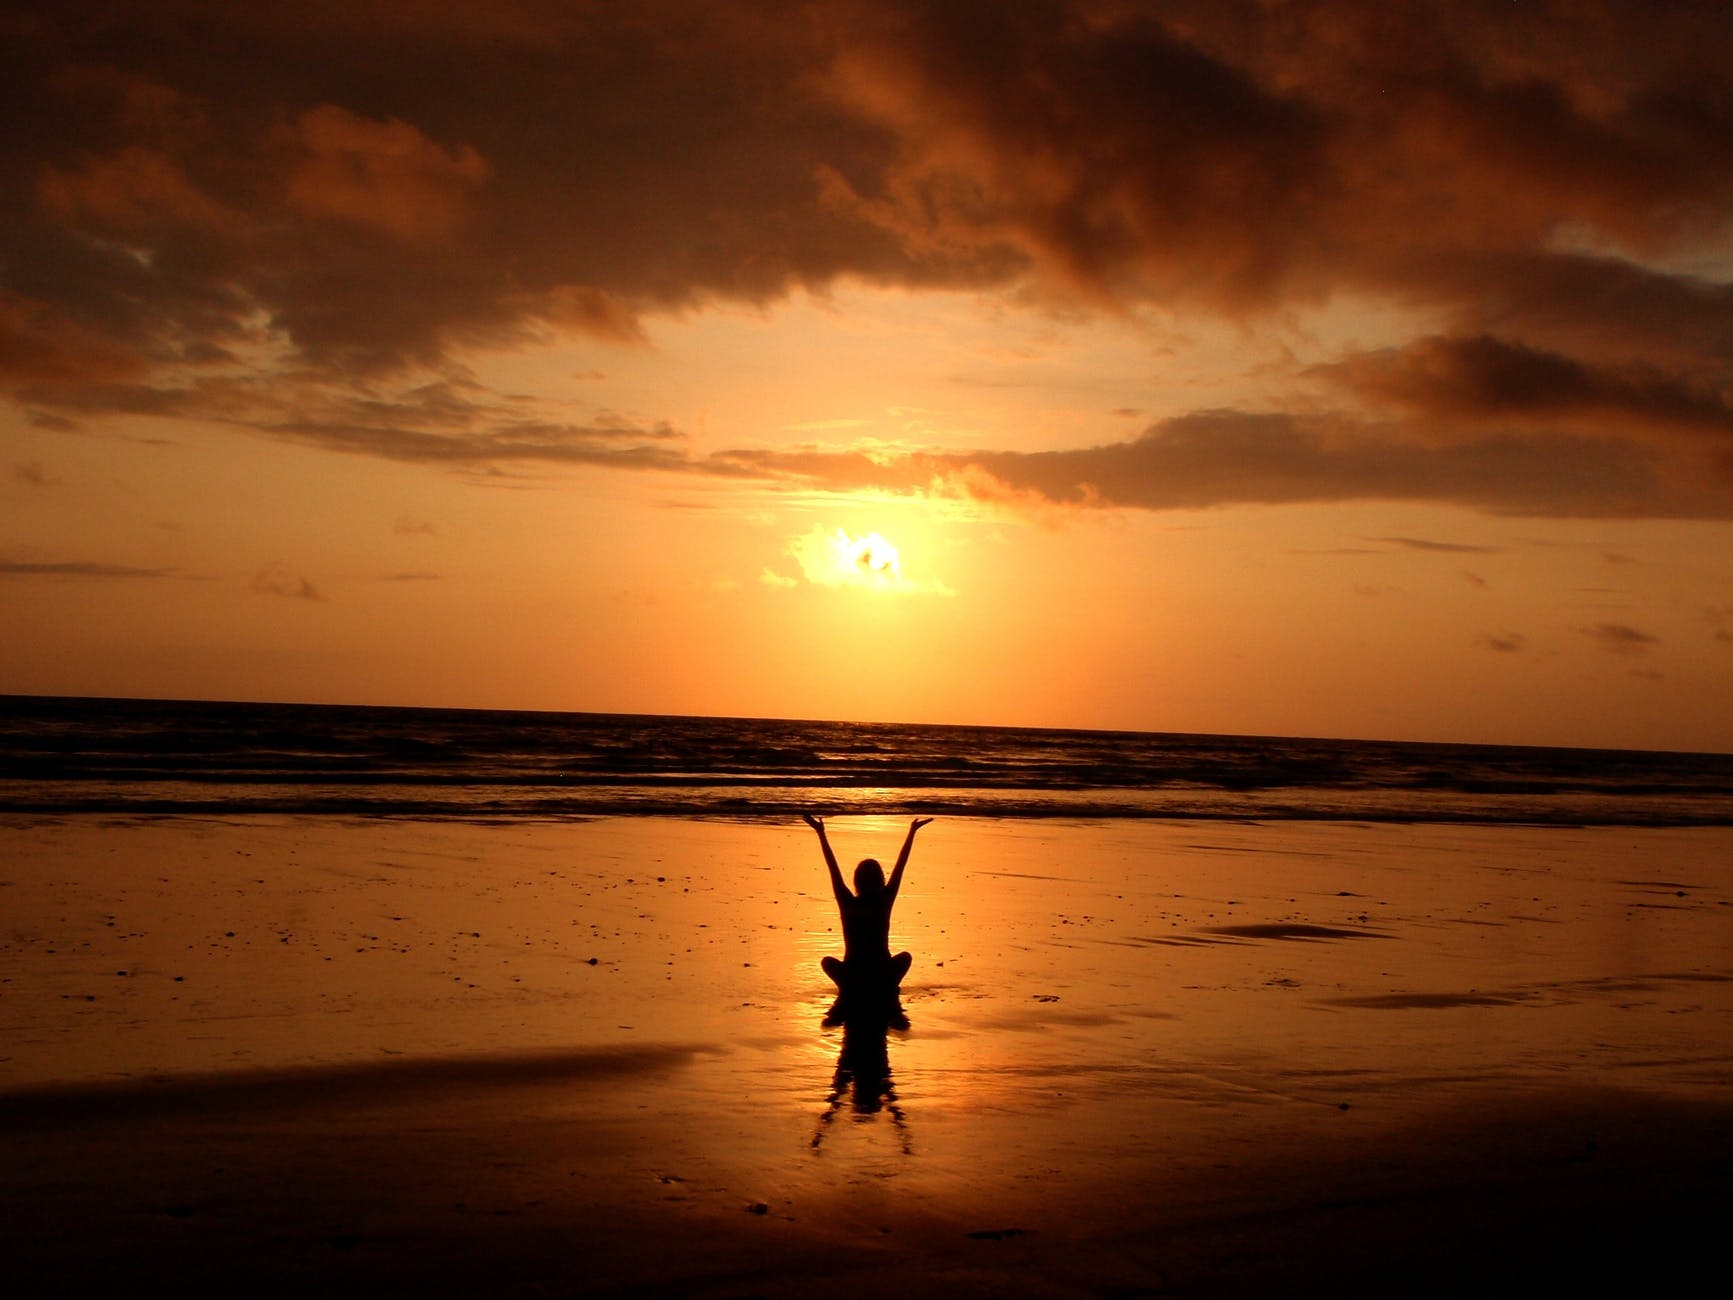 Photo of the back of a woman in shadow form, sitting in lotus position with her hands up towards the sky. The background includes a sunset, the ocean, and the beach.